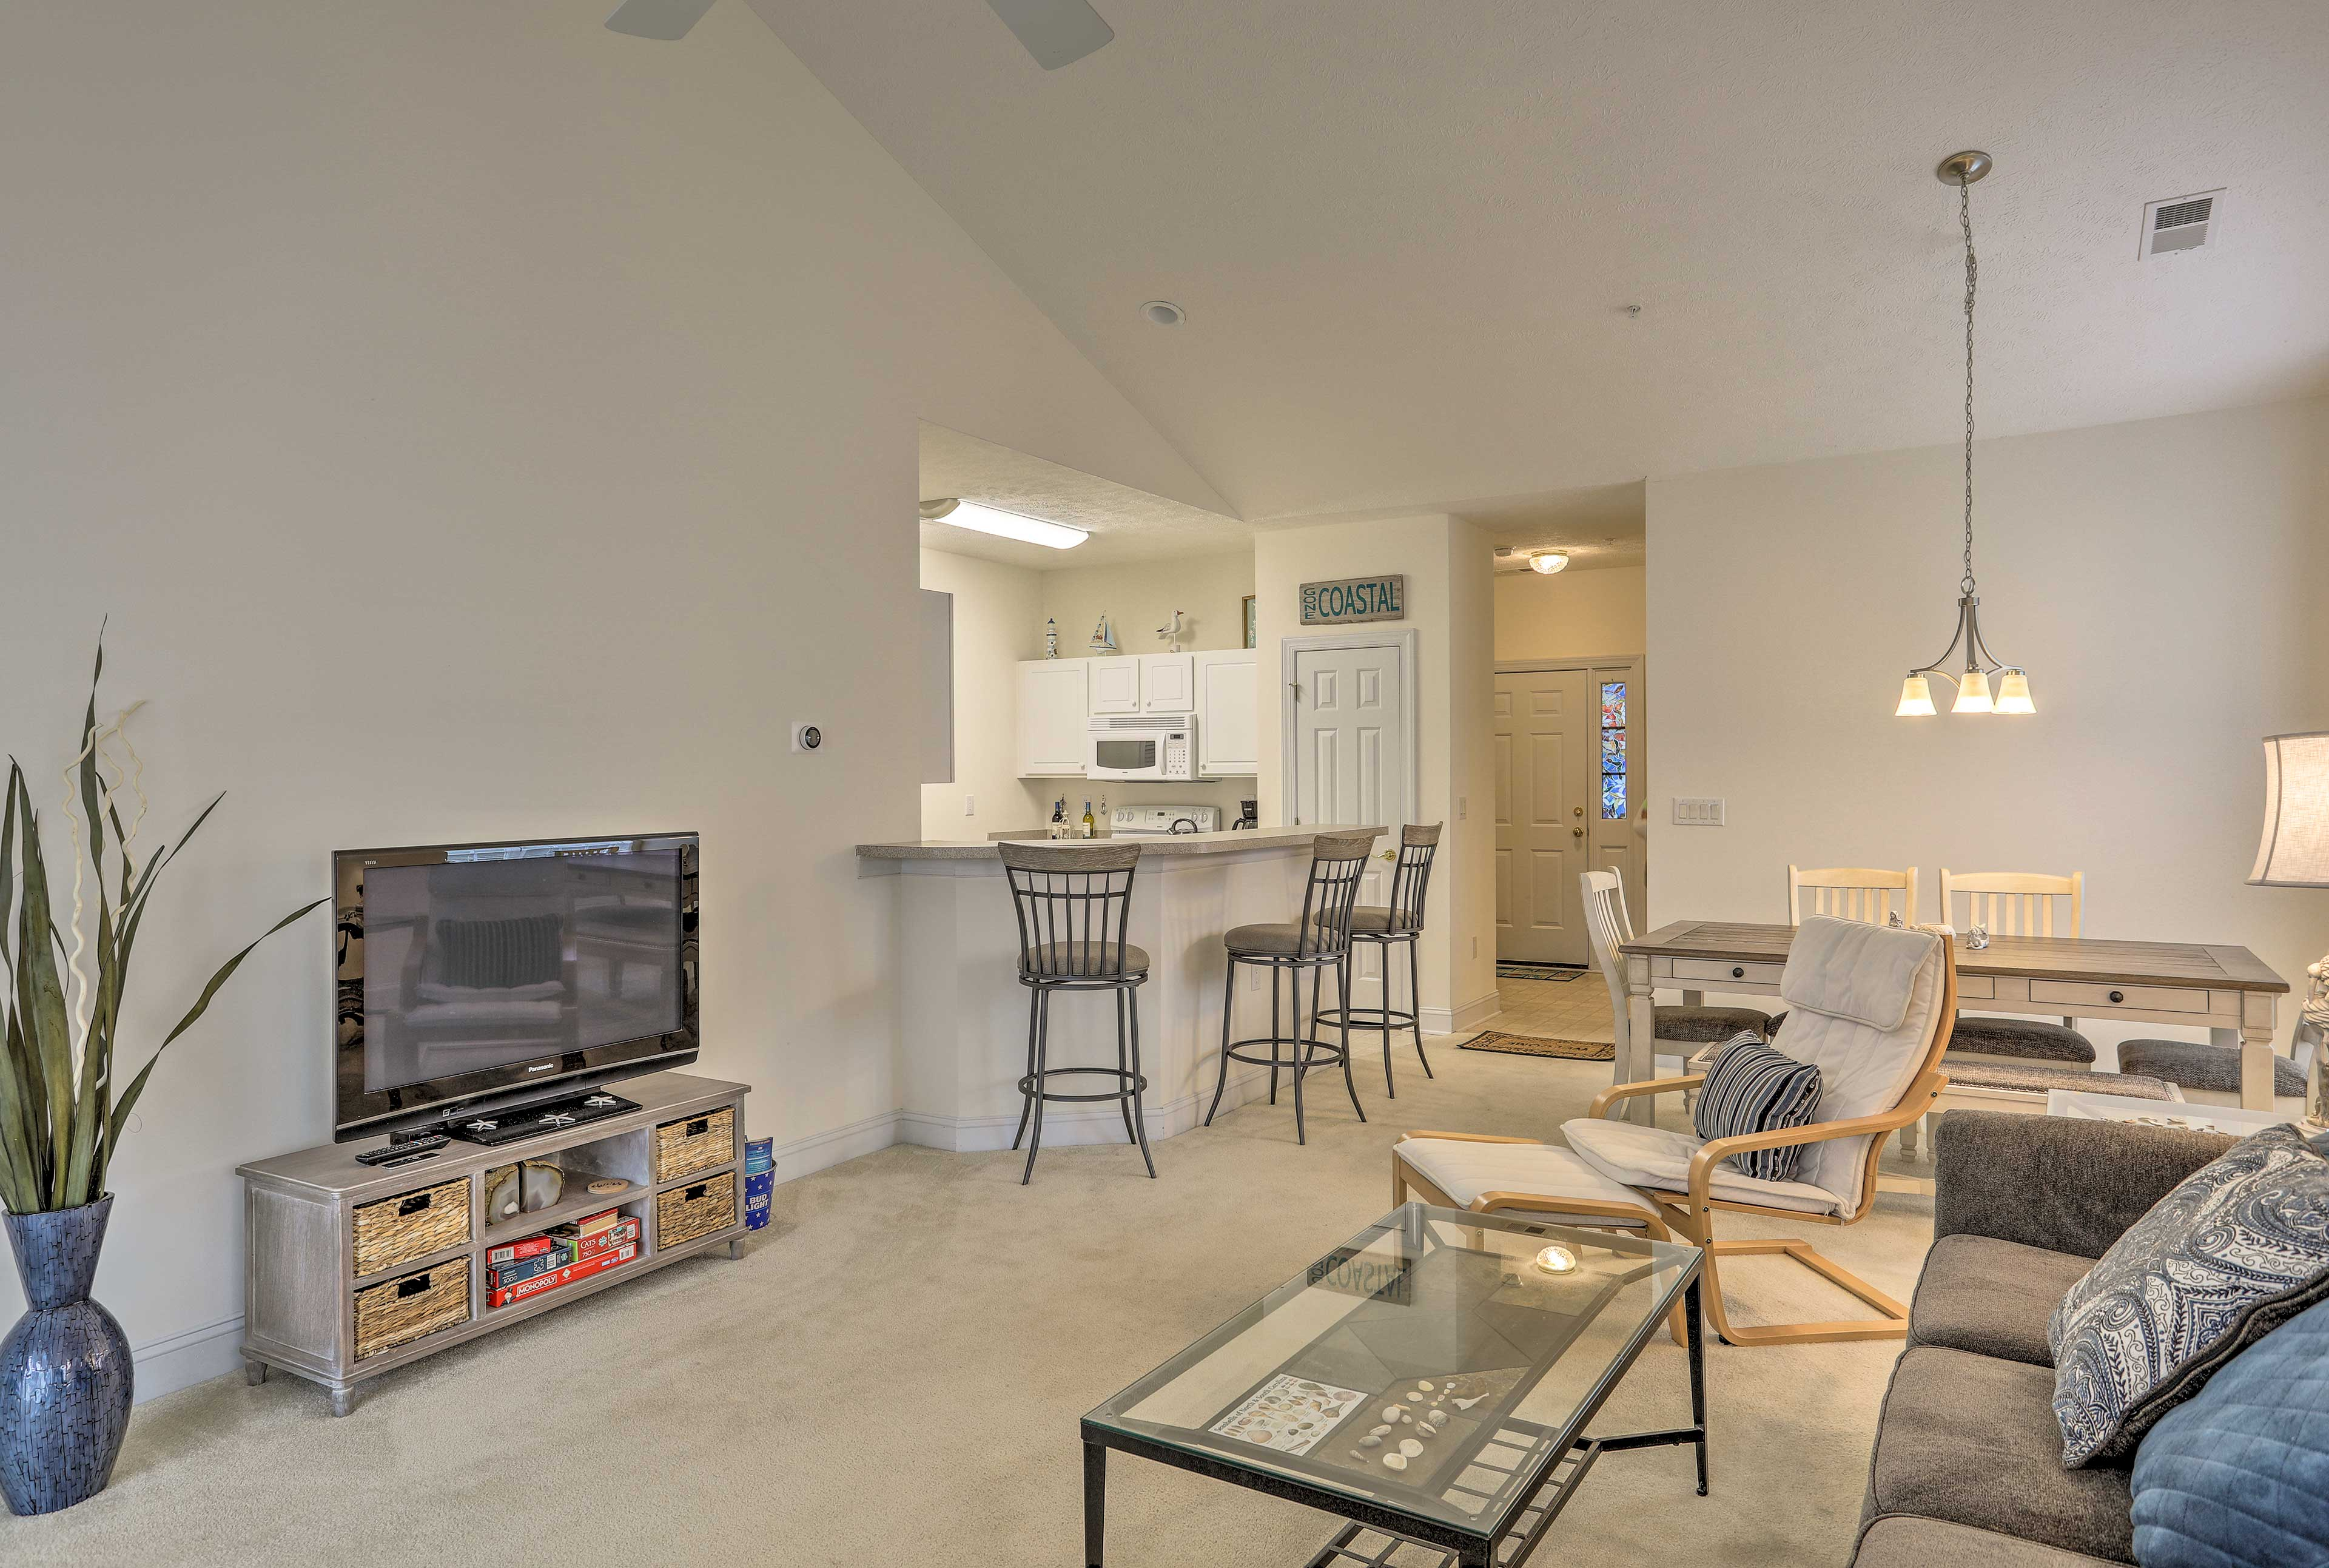 This 3-bedroom, 2-bath vacation rental condo awaits you in Myrtle Beach!